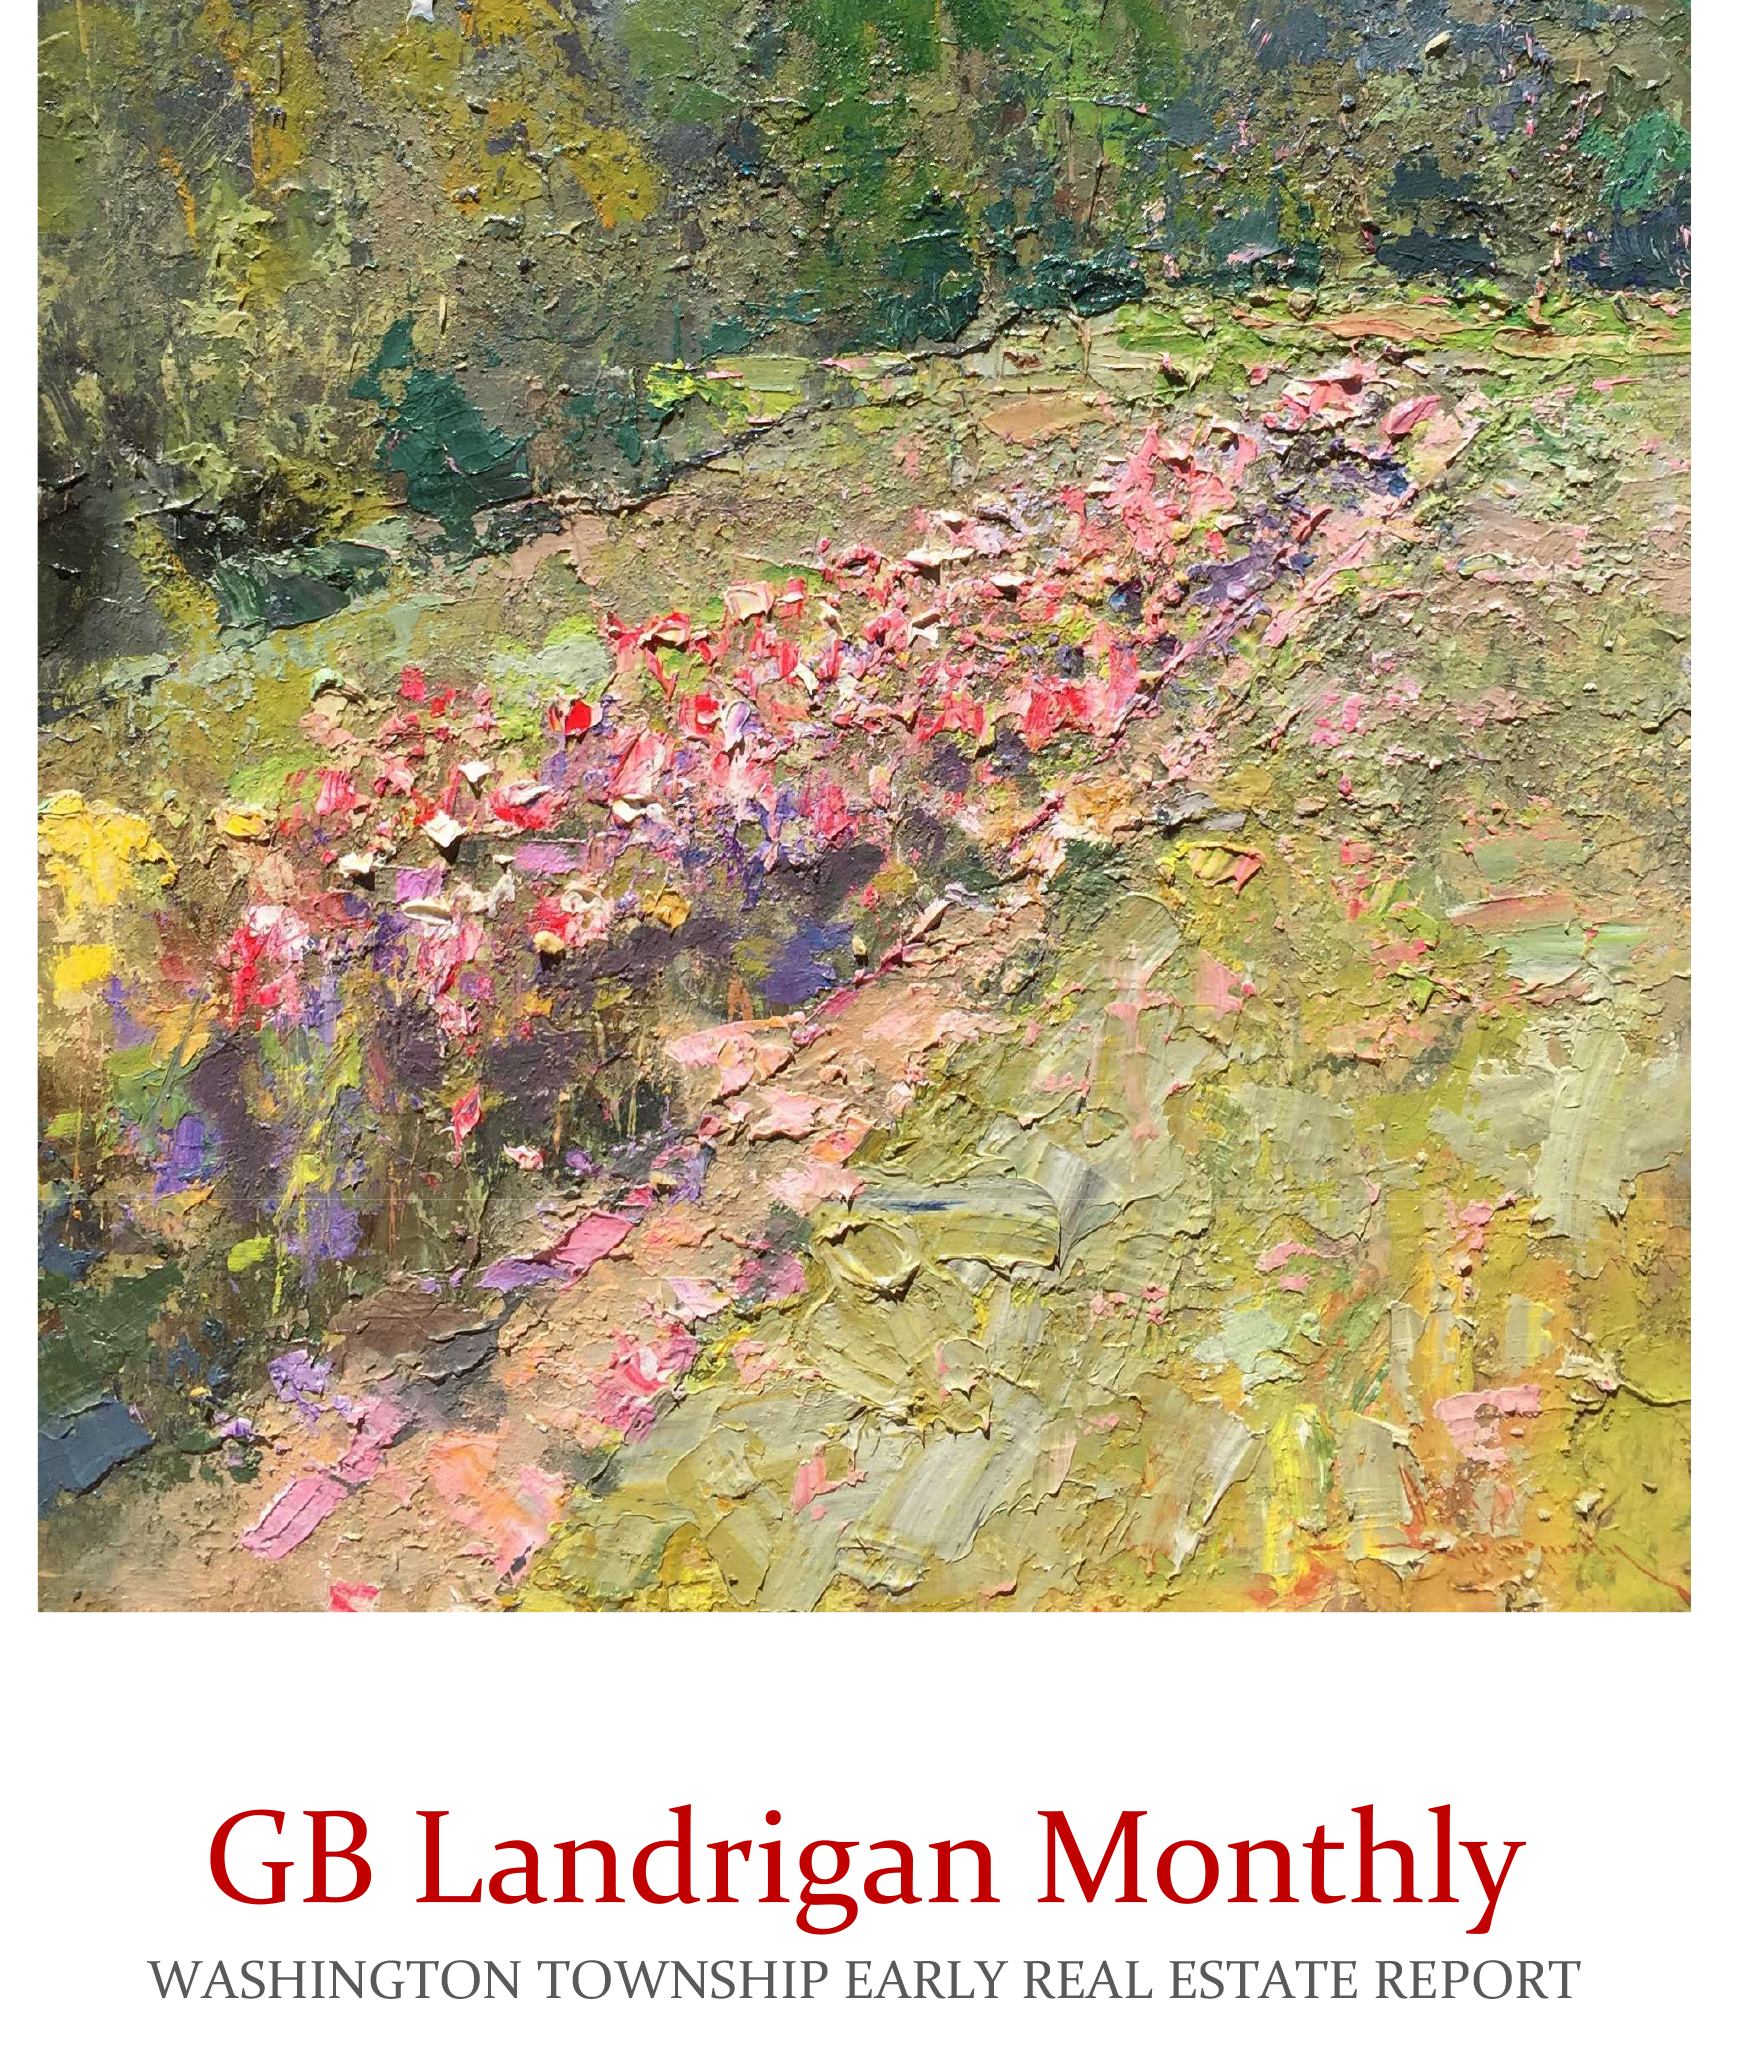 Landrigan Monthly May 2019 cover.jpg